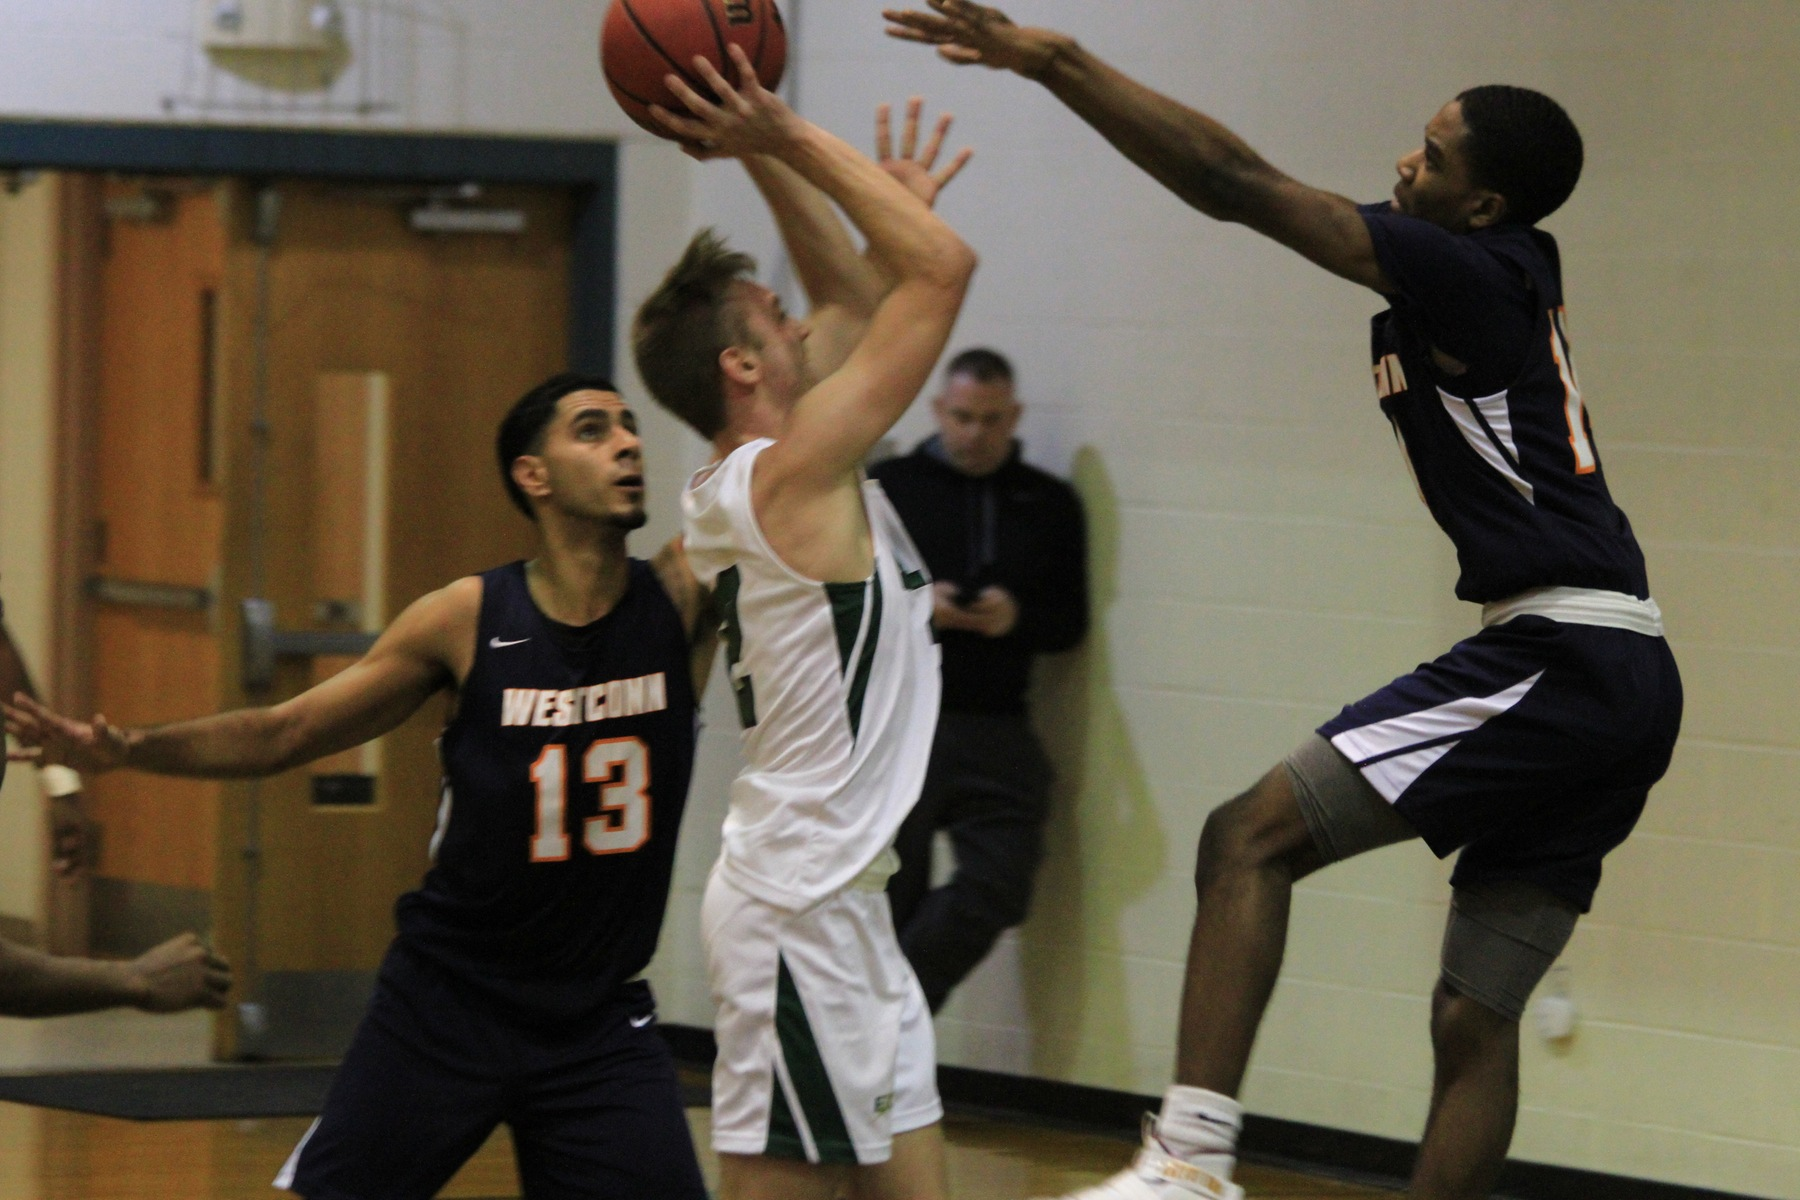 Men's Basketball Win Streak Ends At Three After